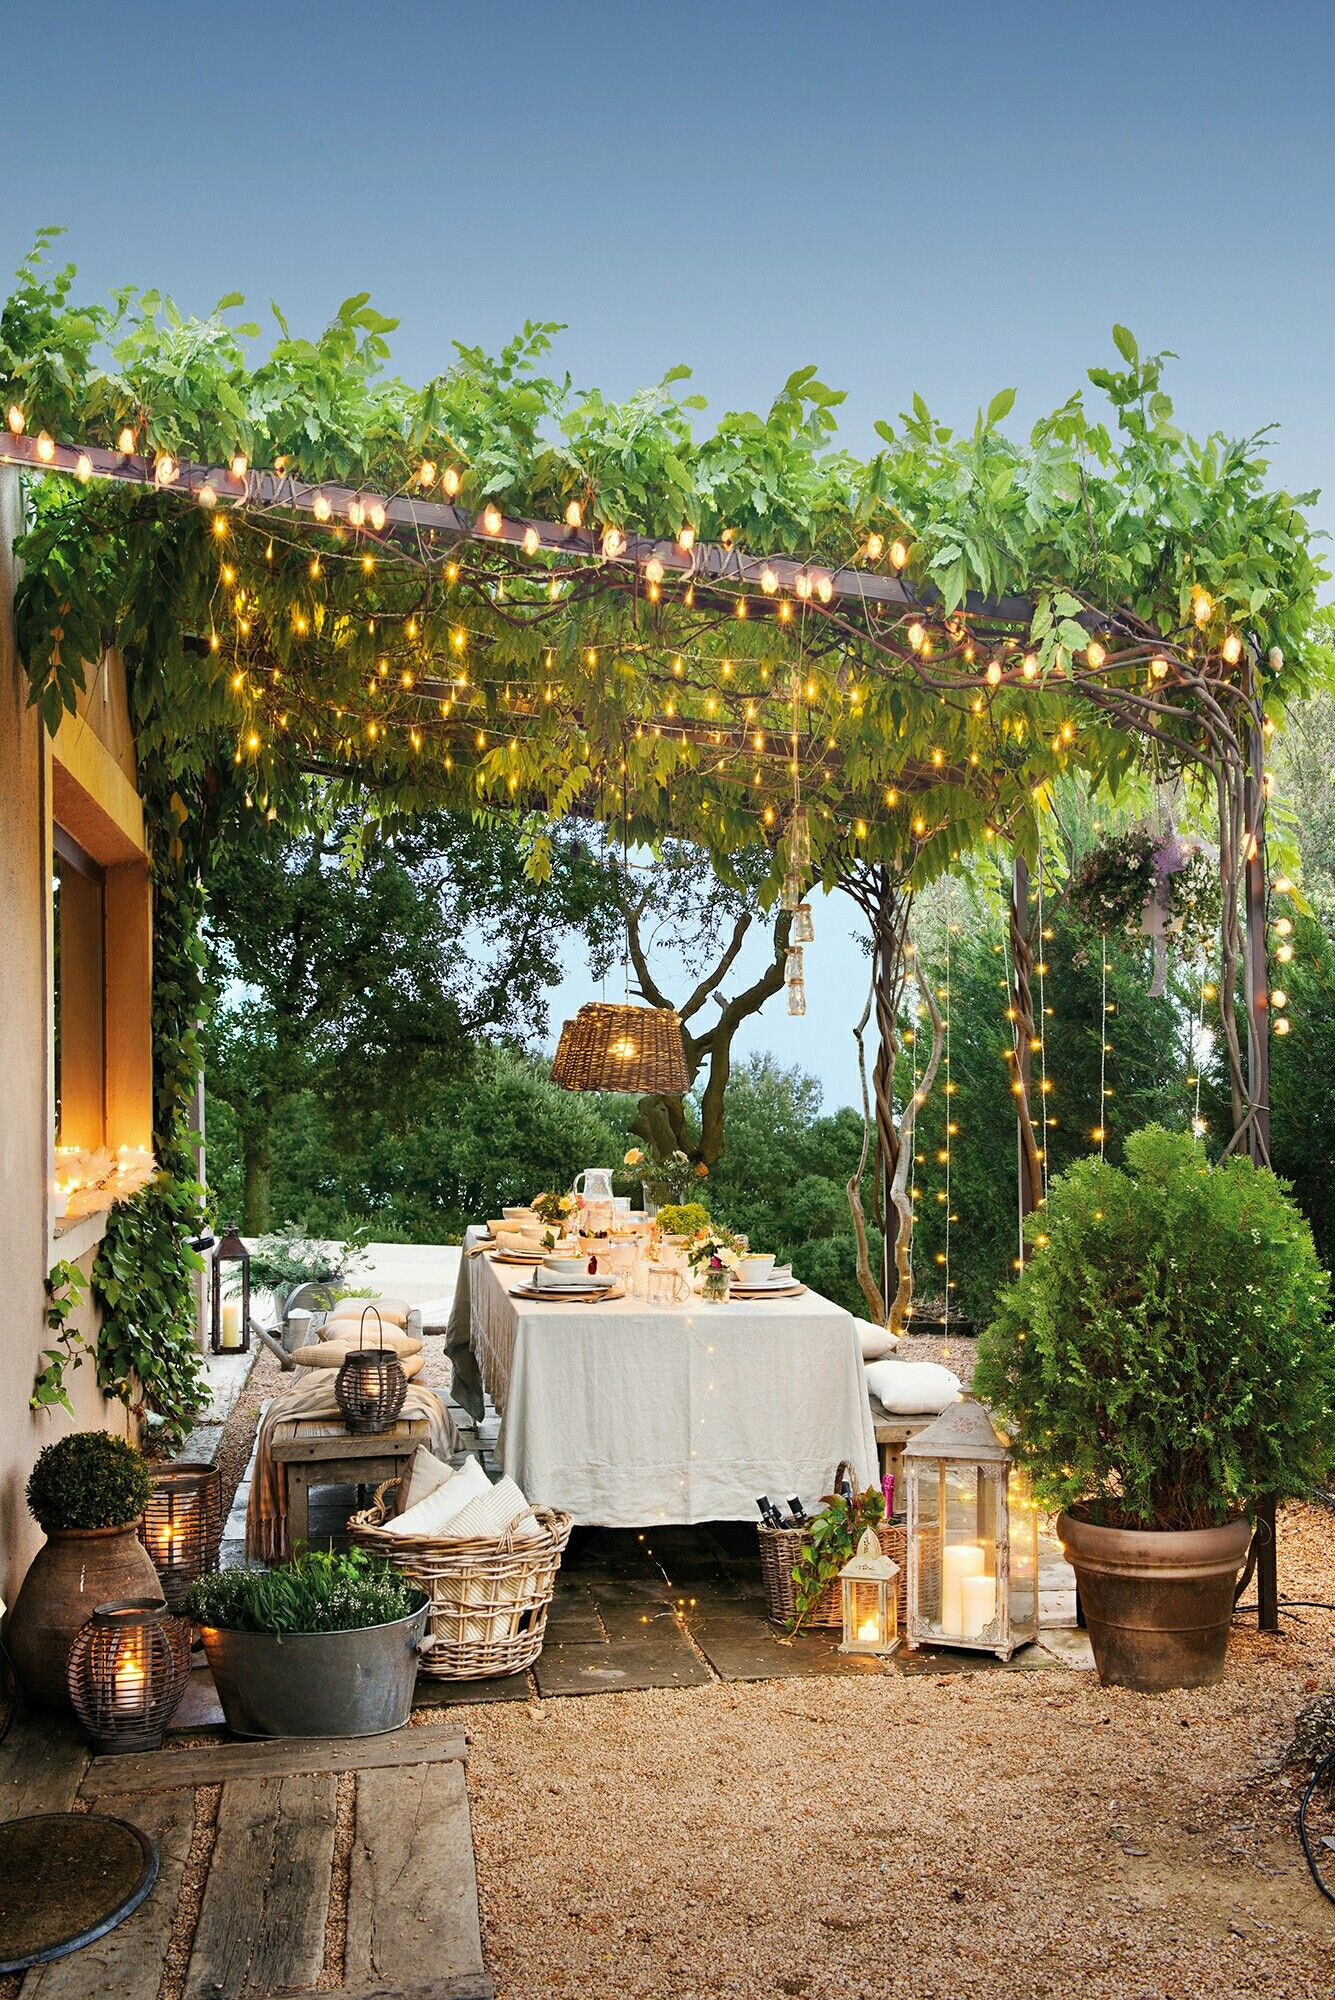 Outdoor Dining Area Under A Vine Covered Pergola With Wooden Table